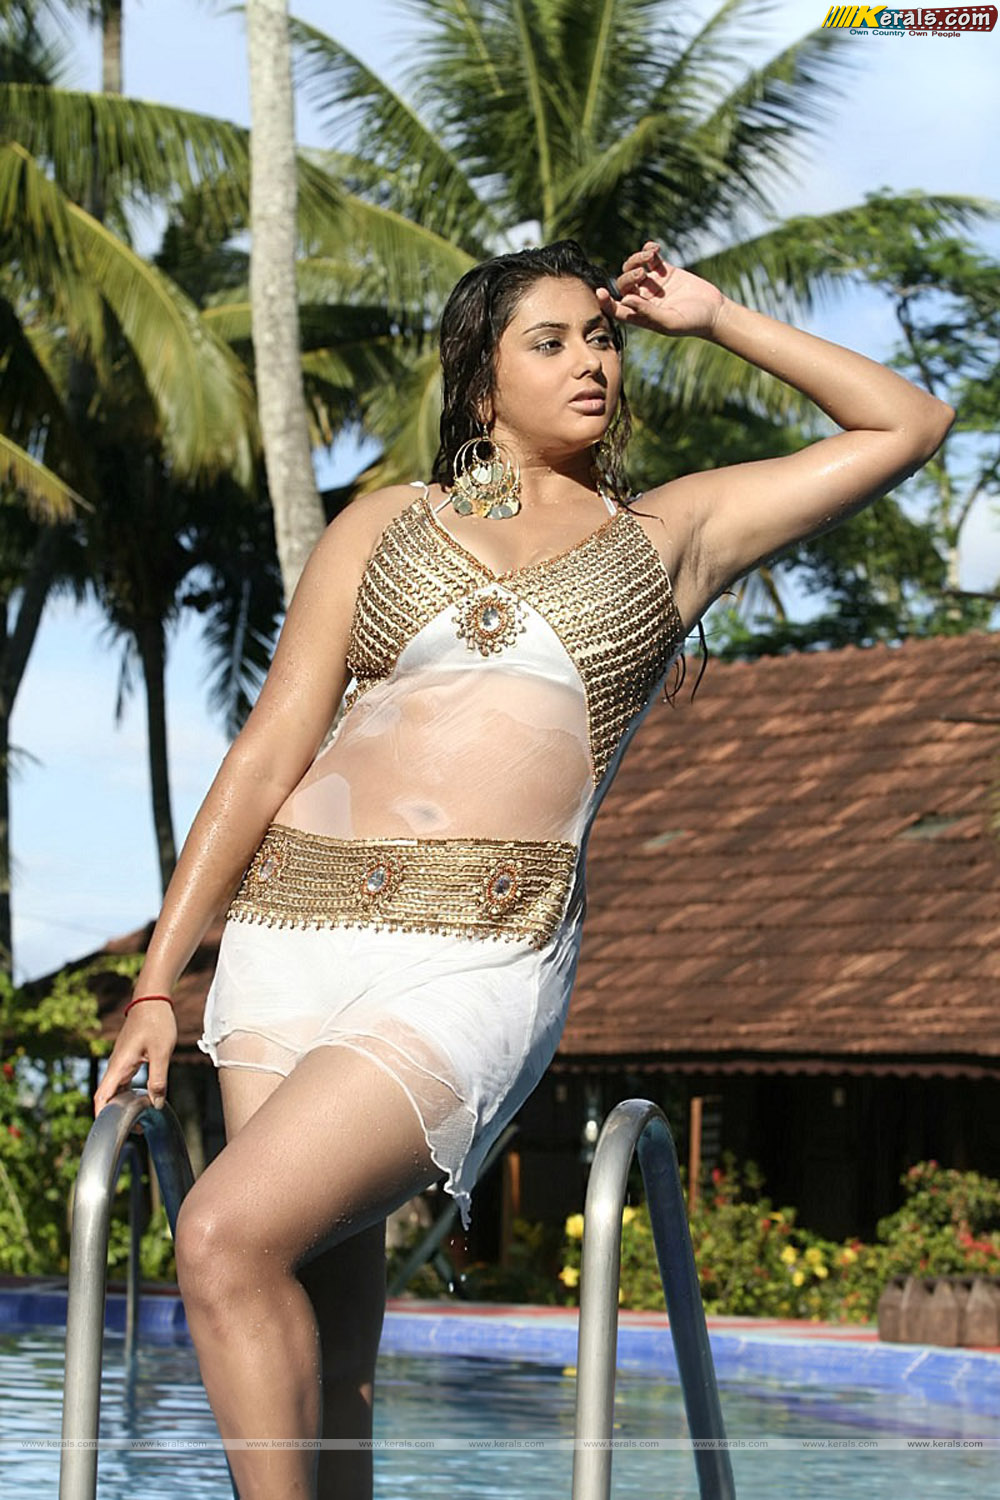 Malayalam Posters Namitha Very Very Hot And Sexy In -7597